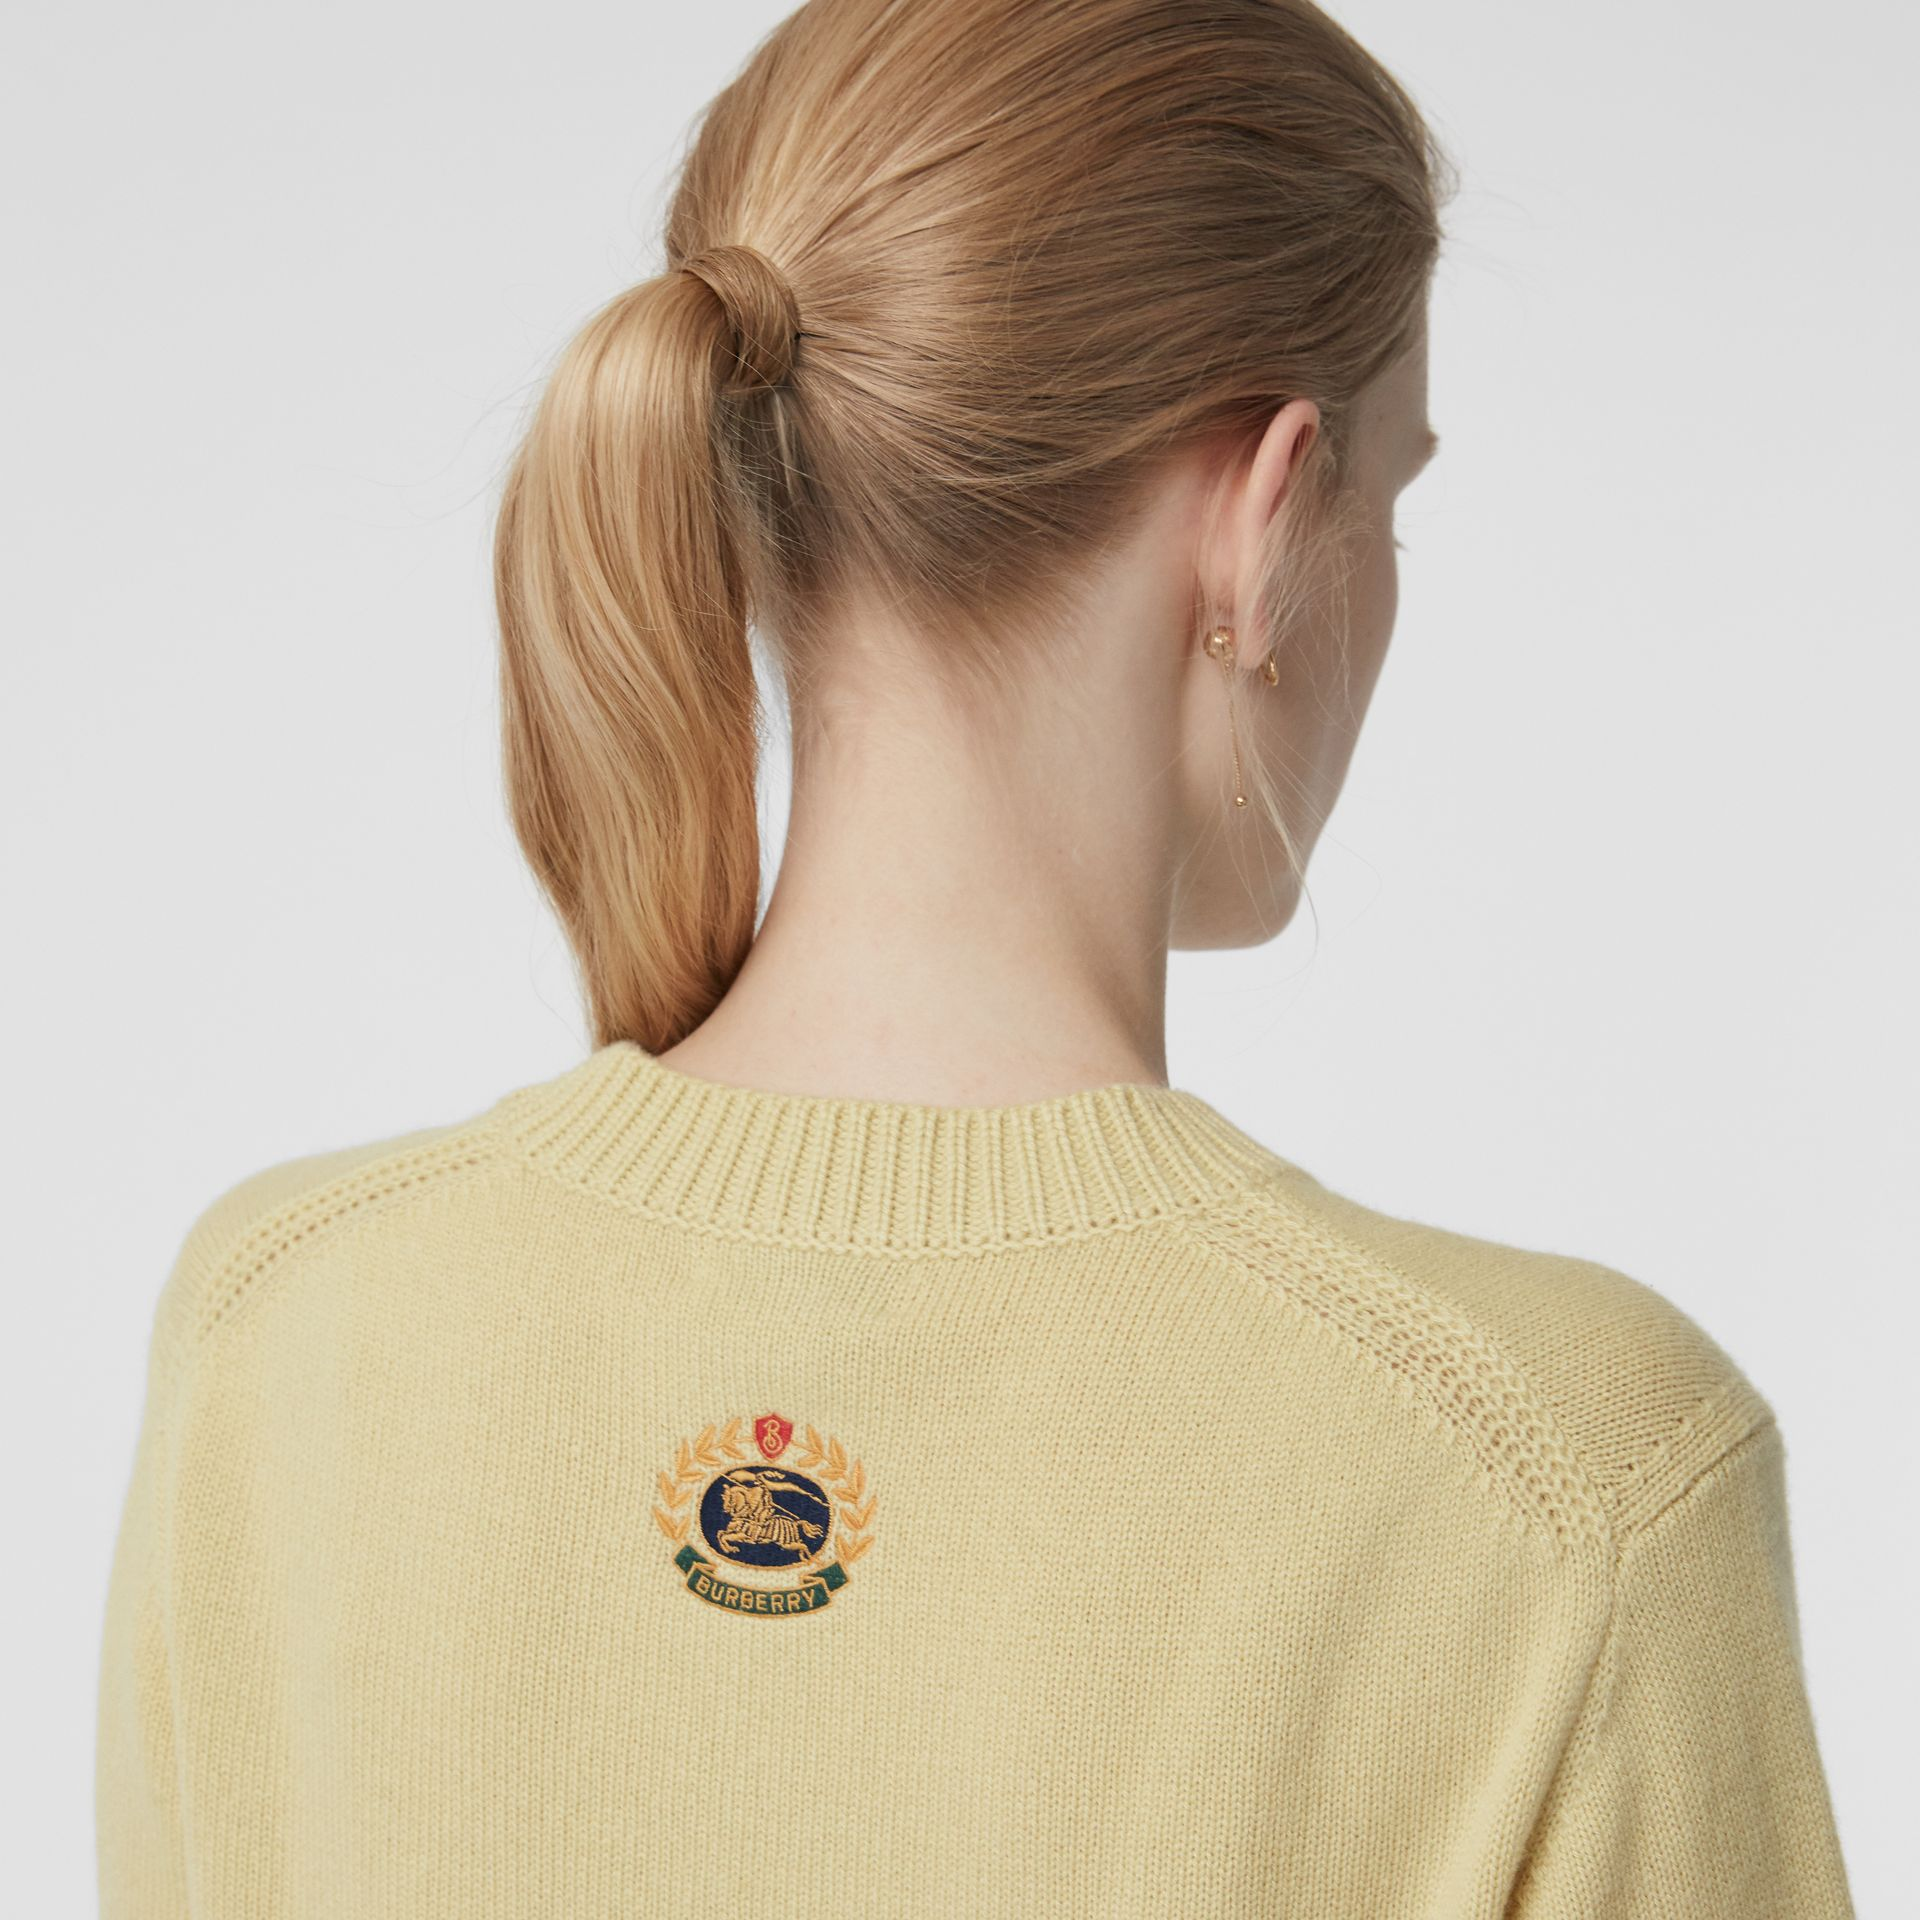 Archive Logo Appliqué Cashmere Sweater in Dusty Yellow - Women | Burberry - gallery image 1